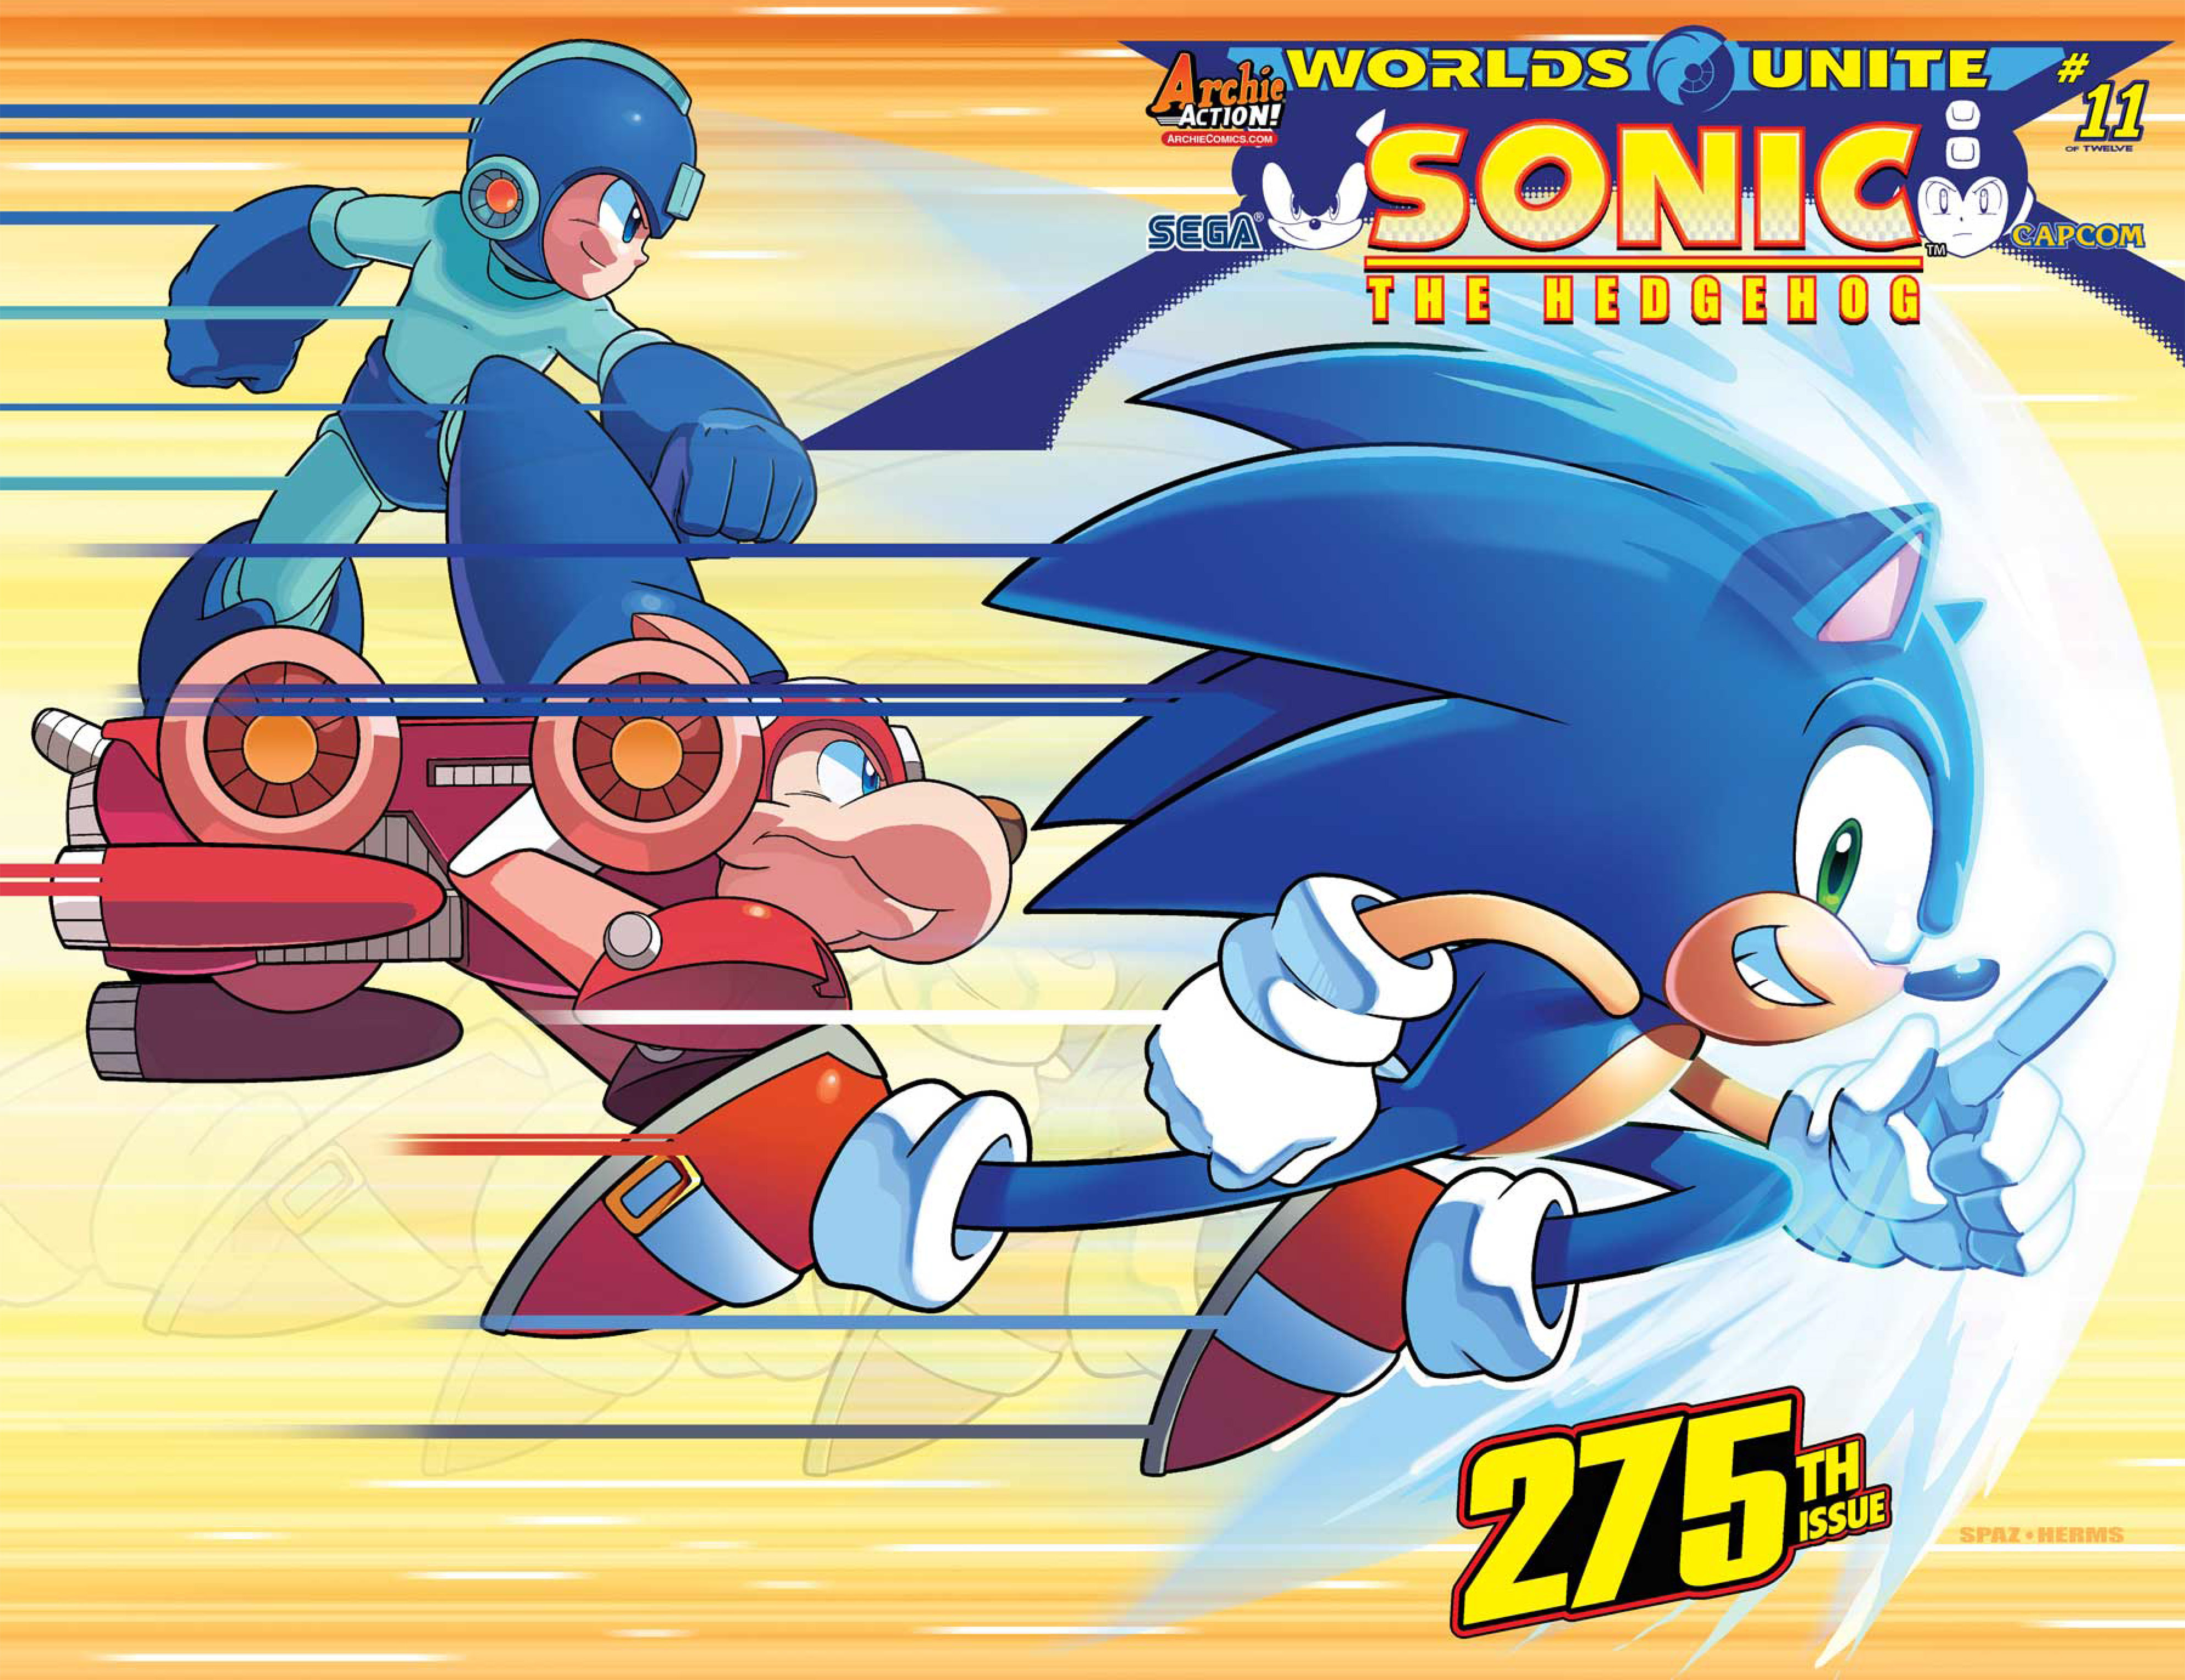 sonic the hedgehog issue 293